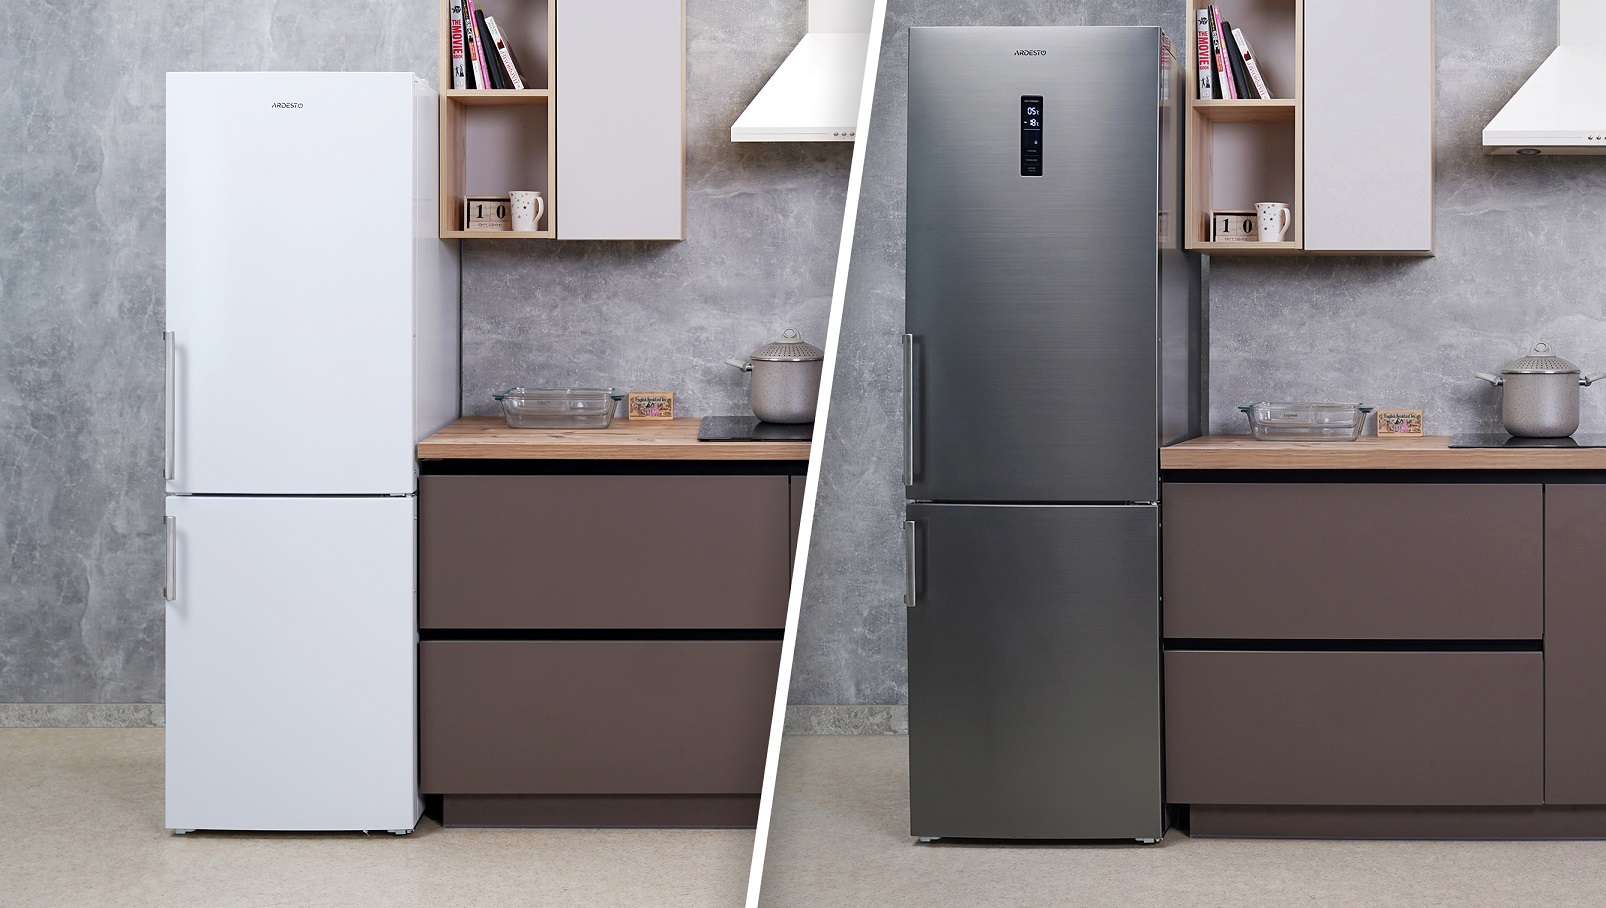 No Frost New Ardesto Refrigerators With No Frost Cooling Ardesto